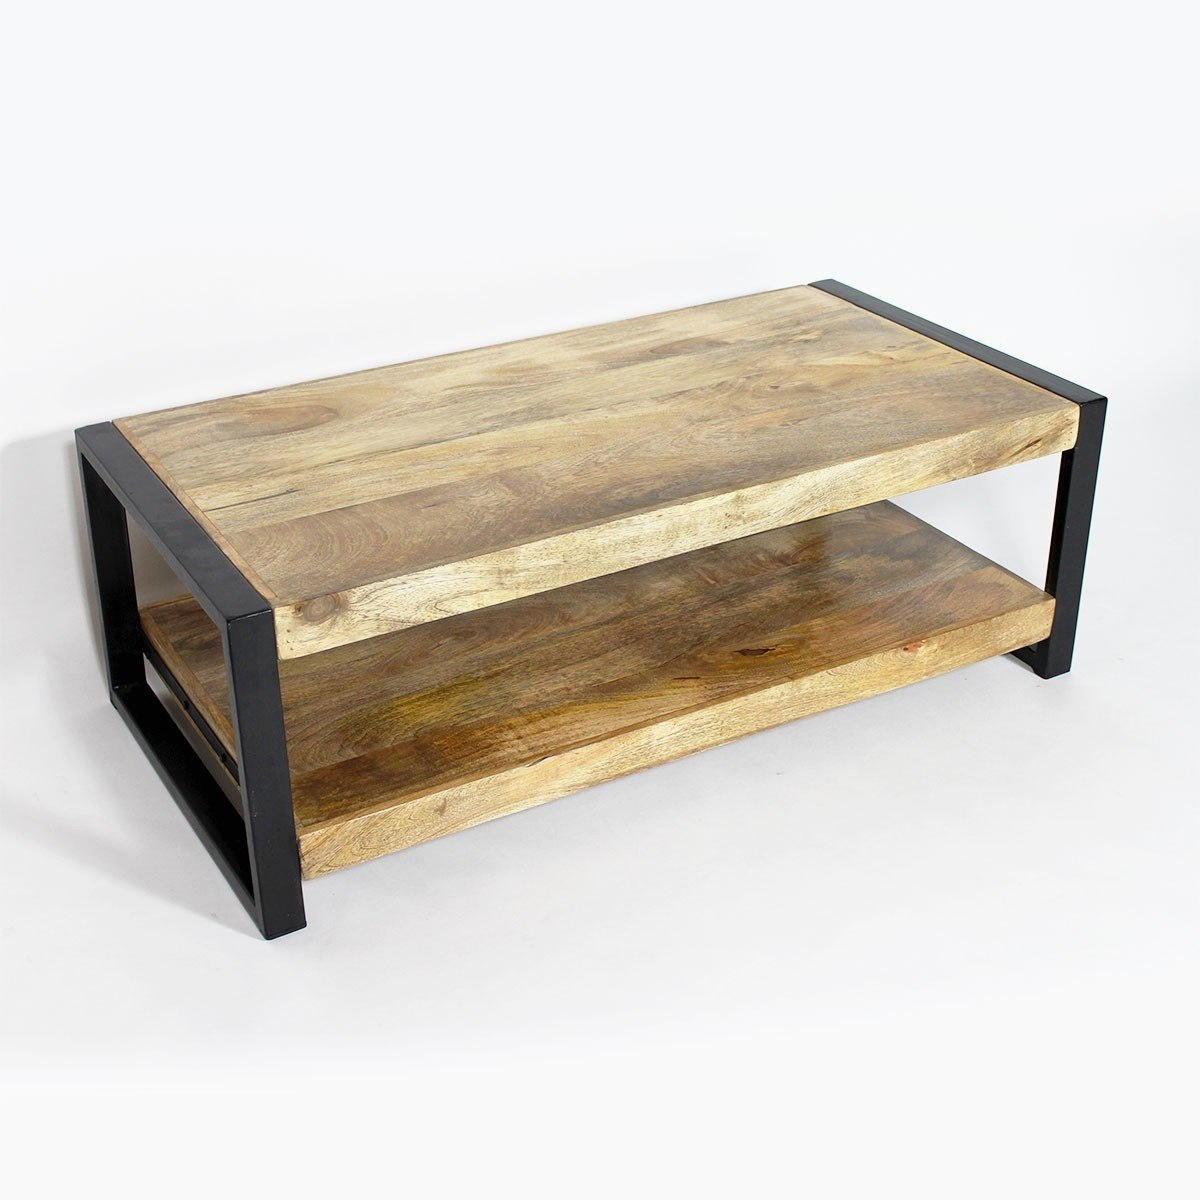 Table Ronde Scandinave Le Bon Coin Boutique Gain De Place Fr